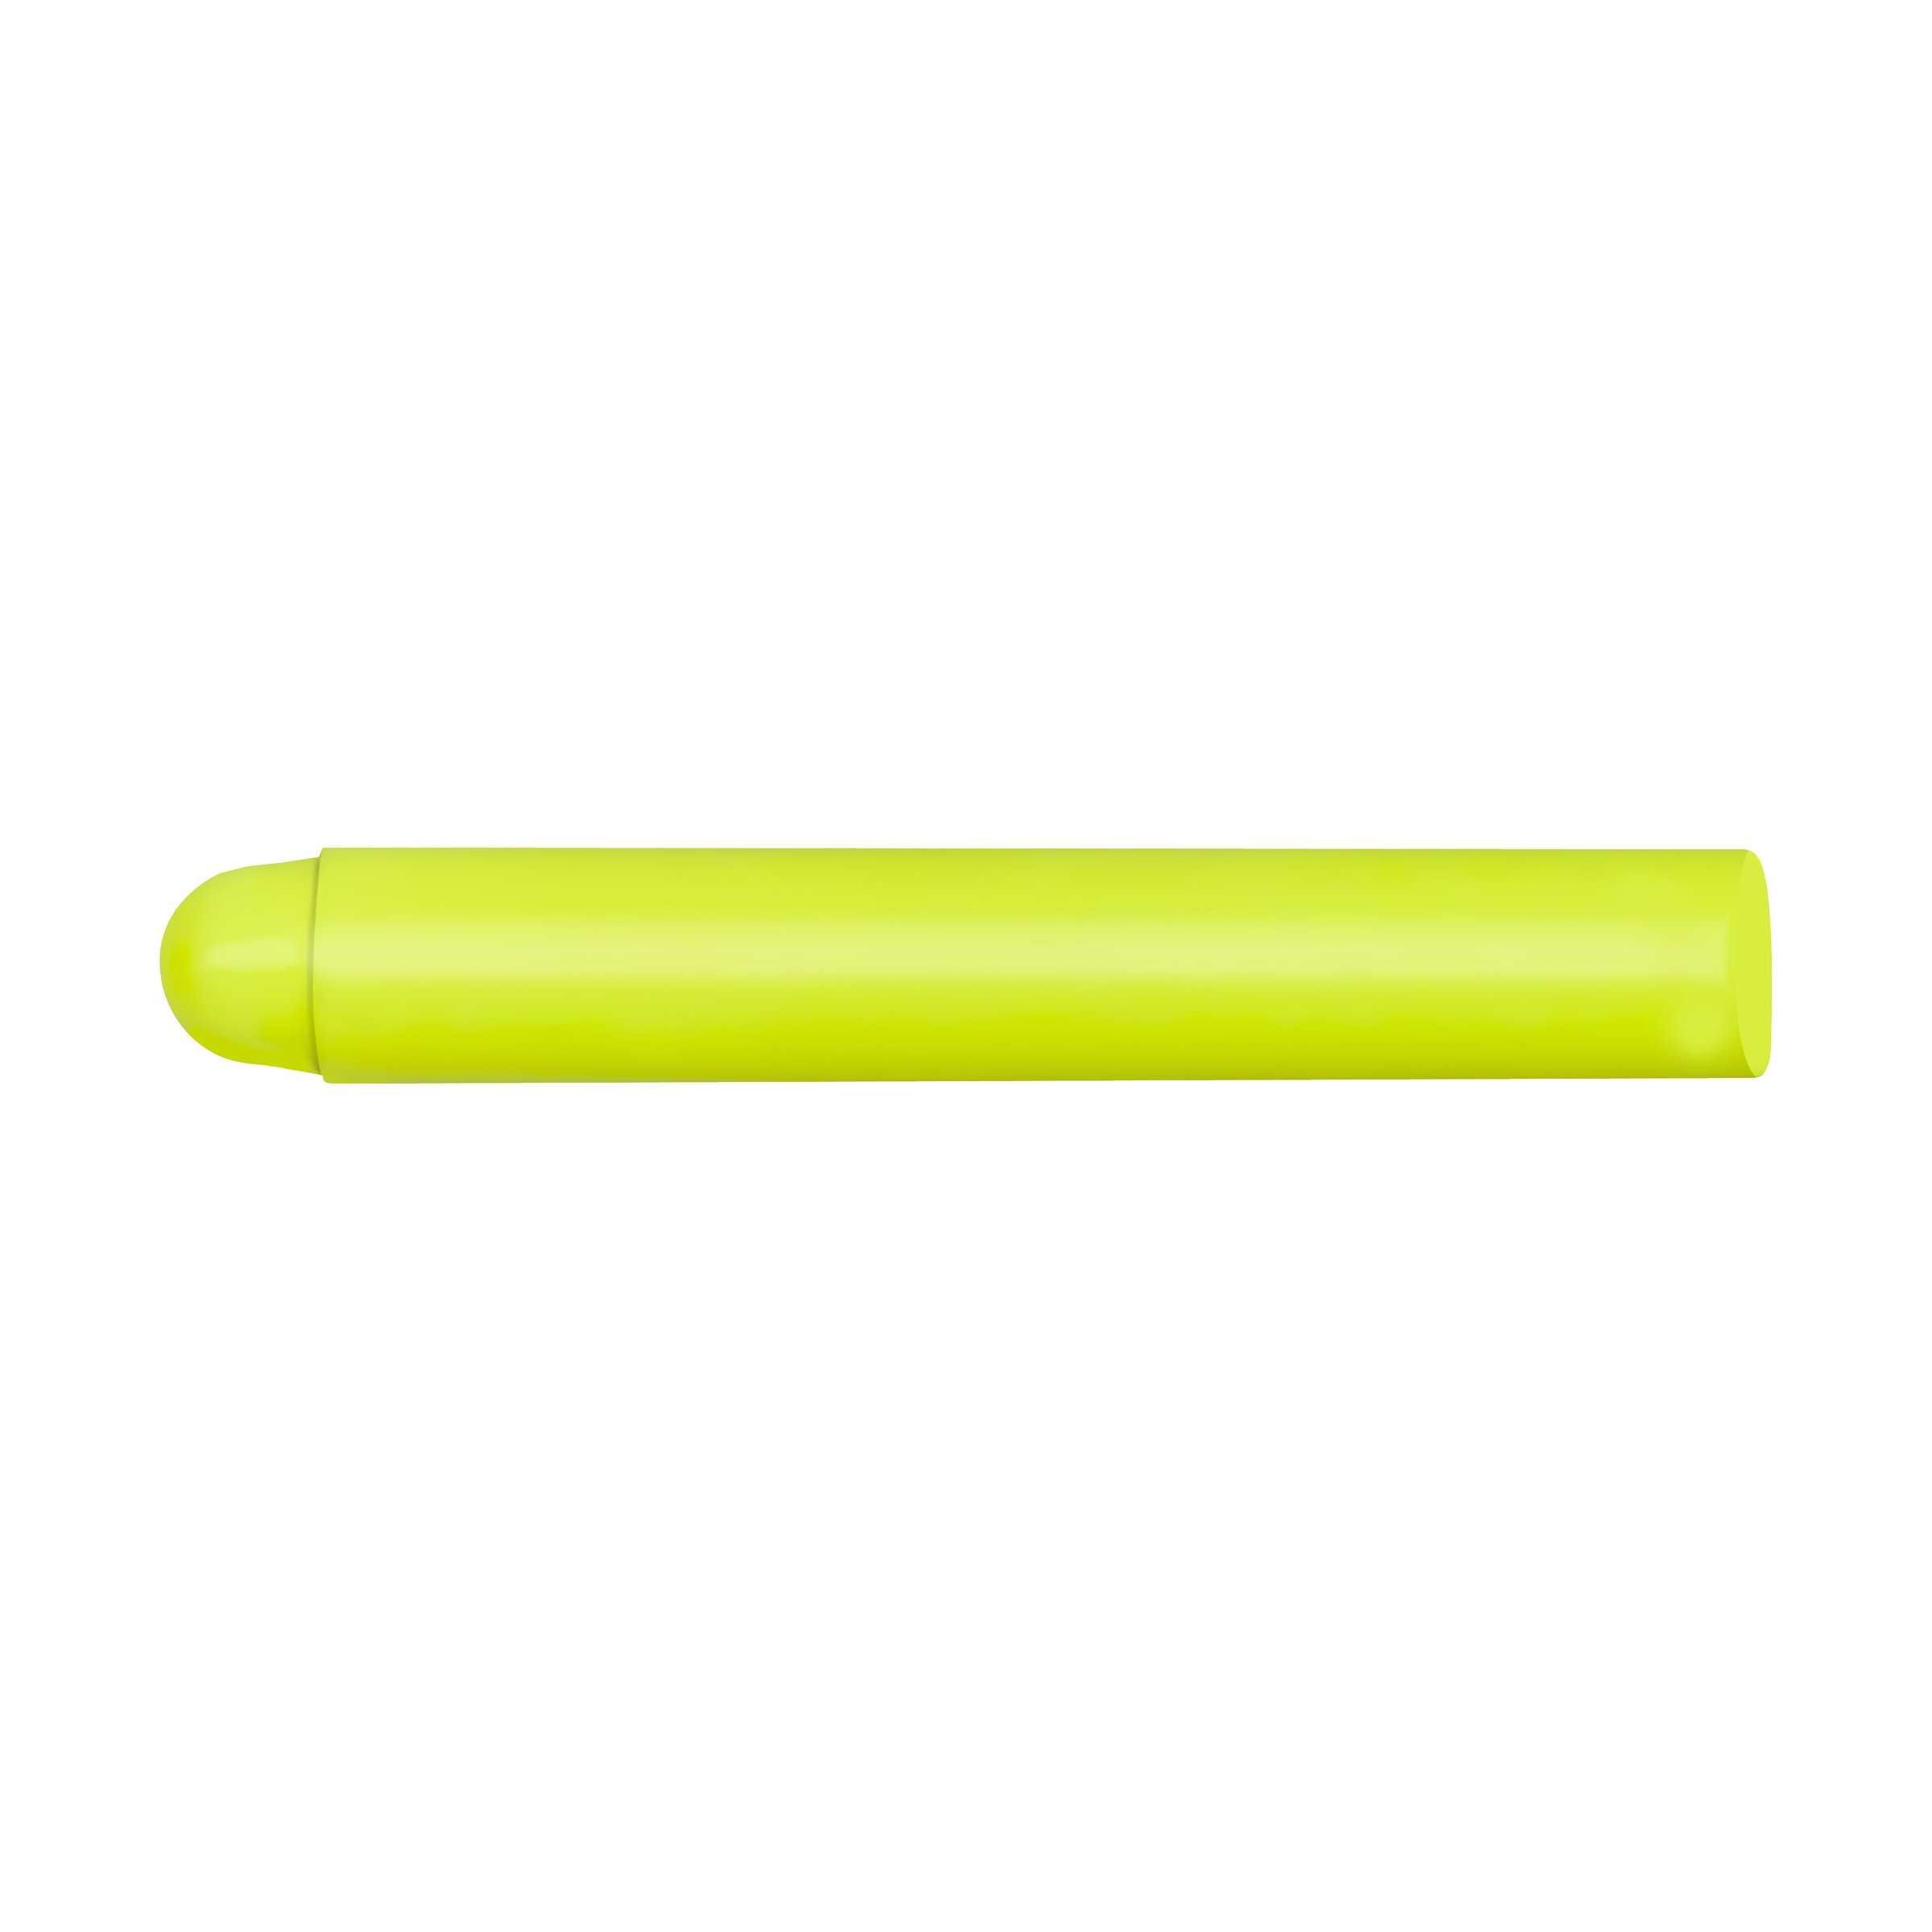 Markal UltraScan Polymer Fluorescent Lumber and Timber Marker, 11/16'' Round, 4-5/8'' Length, Yellow (Pack of 12)